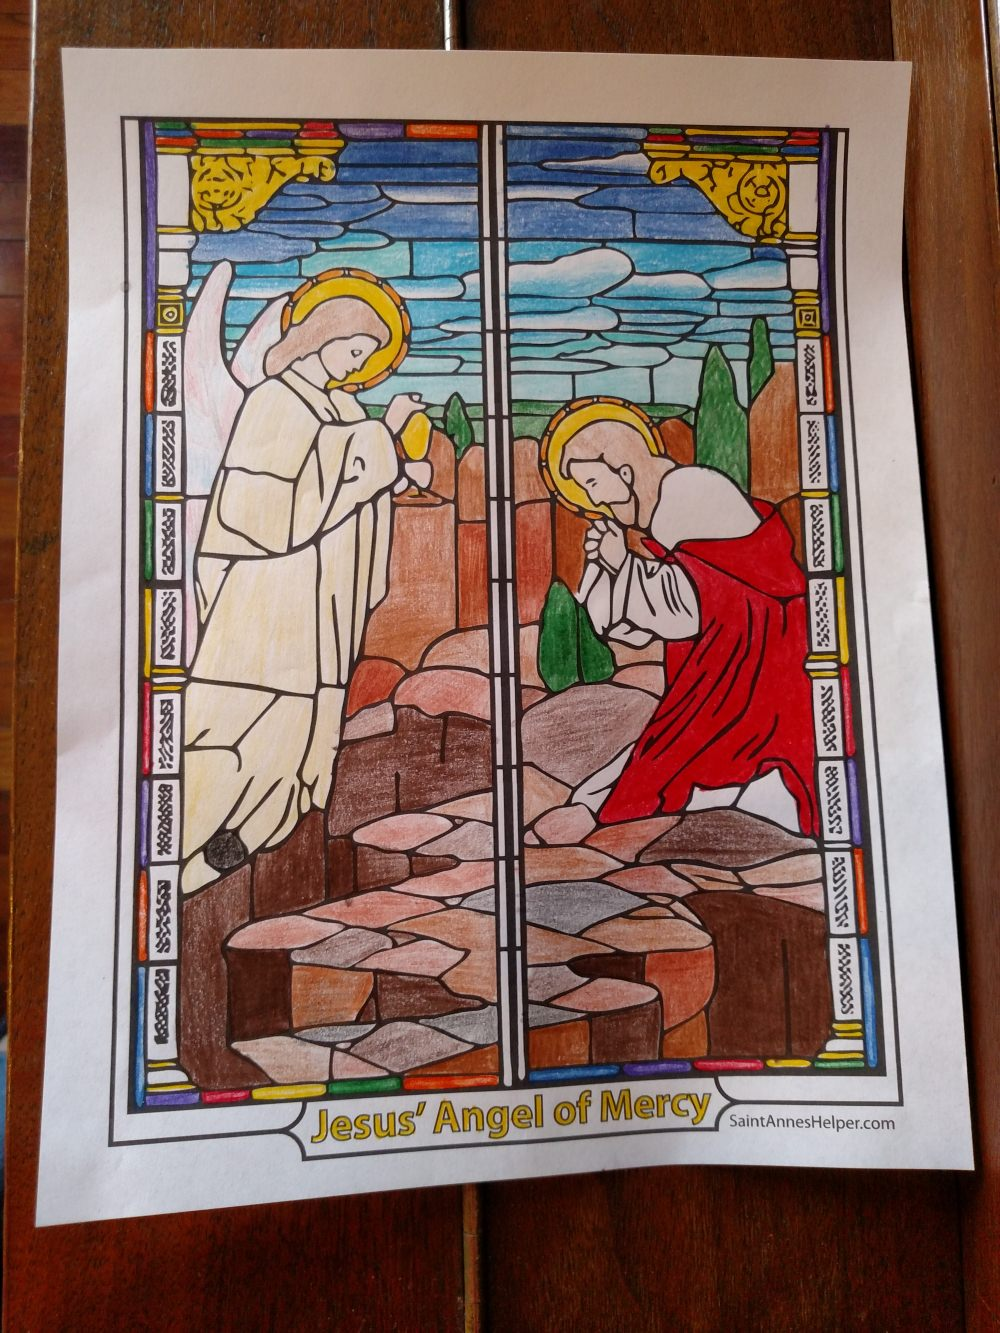 Lent Coloring Page, Rosary coloring page: Jesus' Agony in the Garden of Olives with Angel of Mercy.